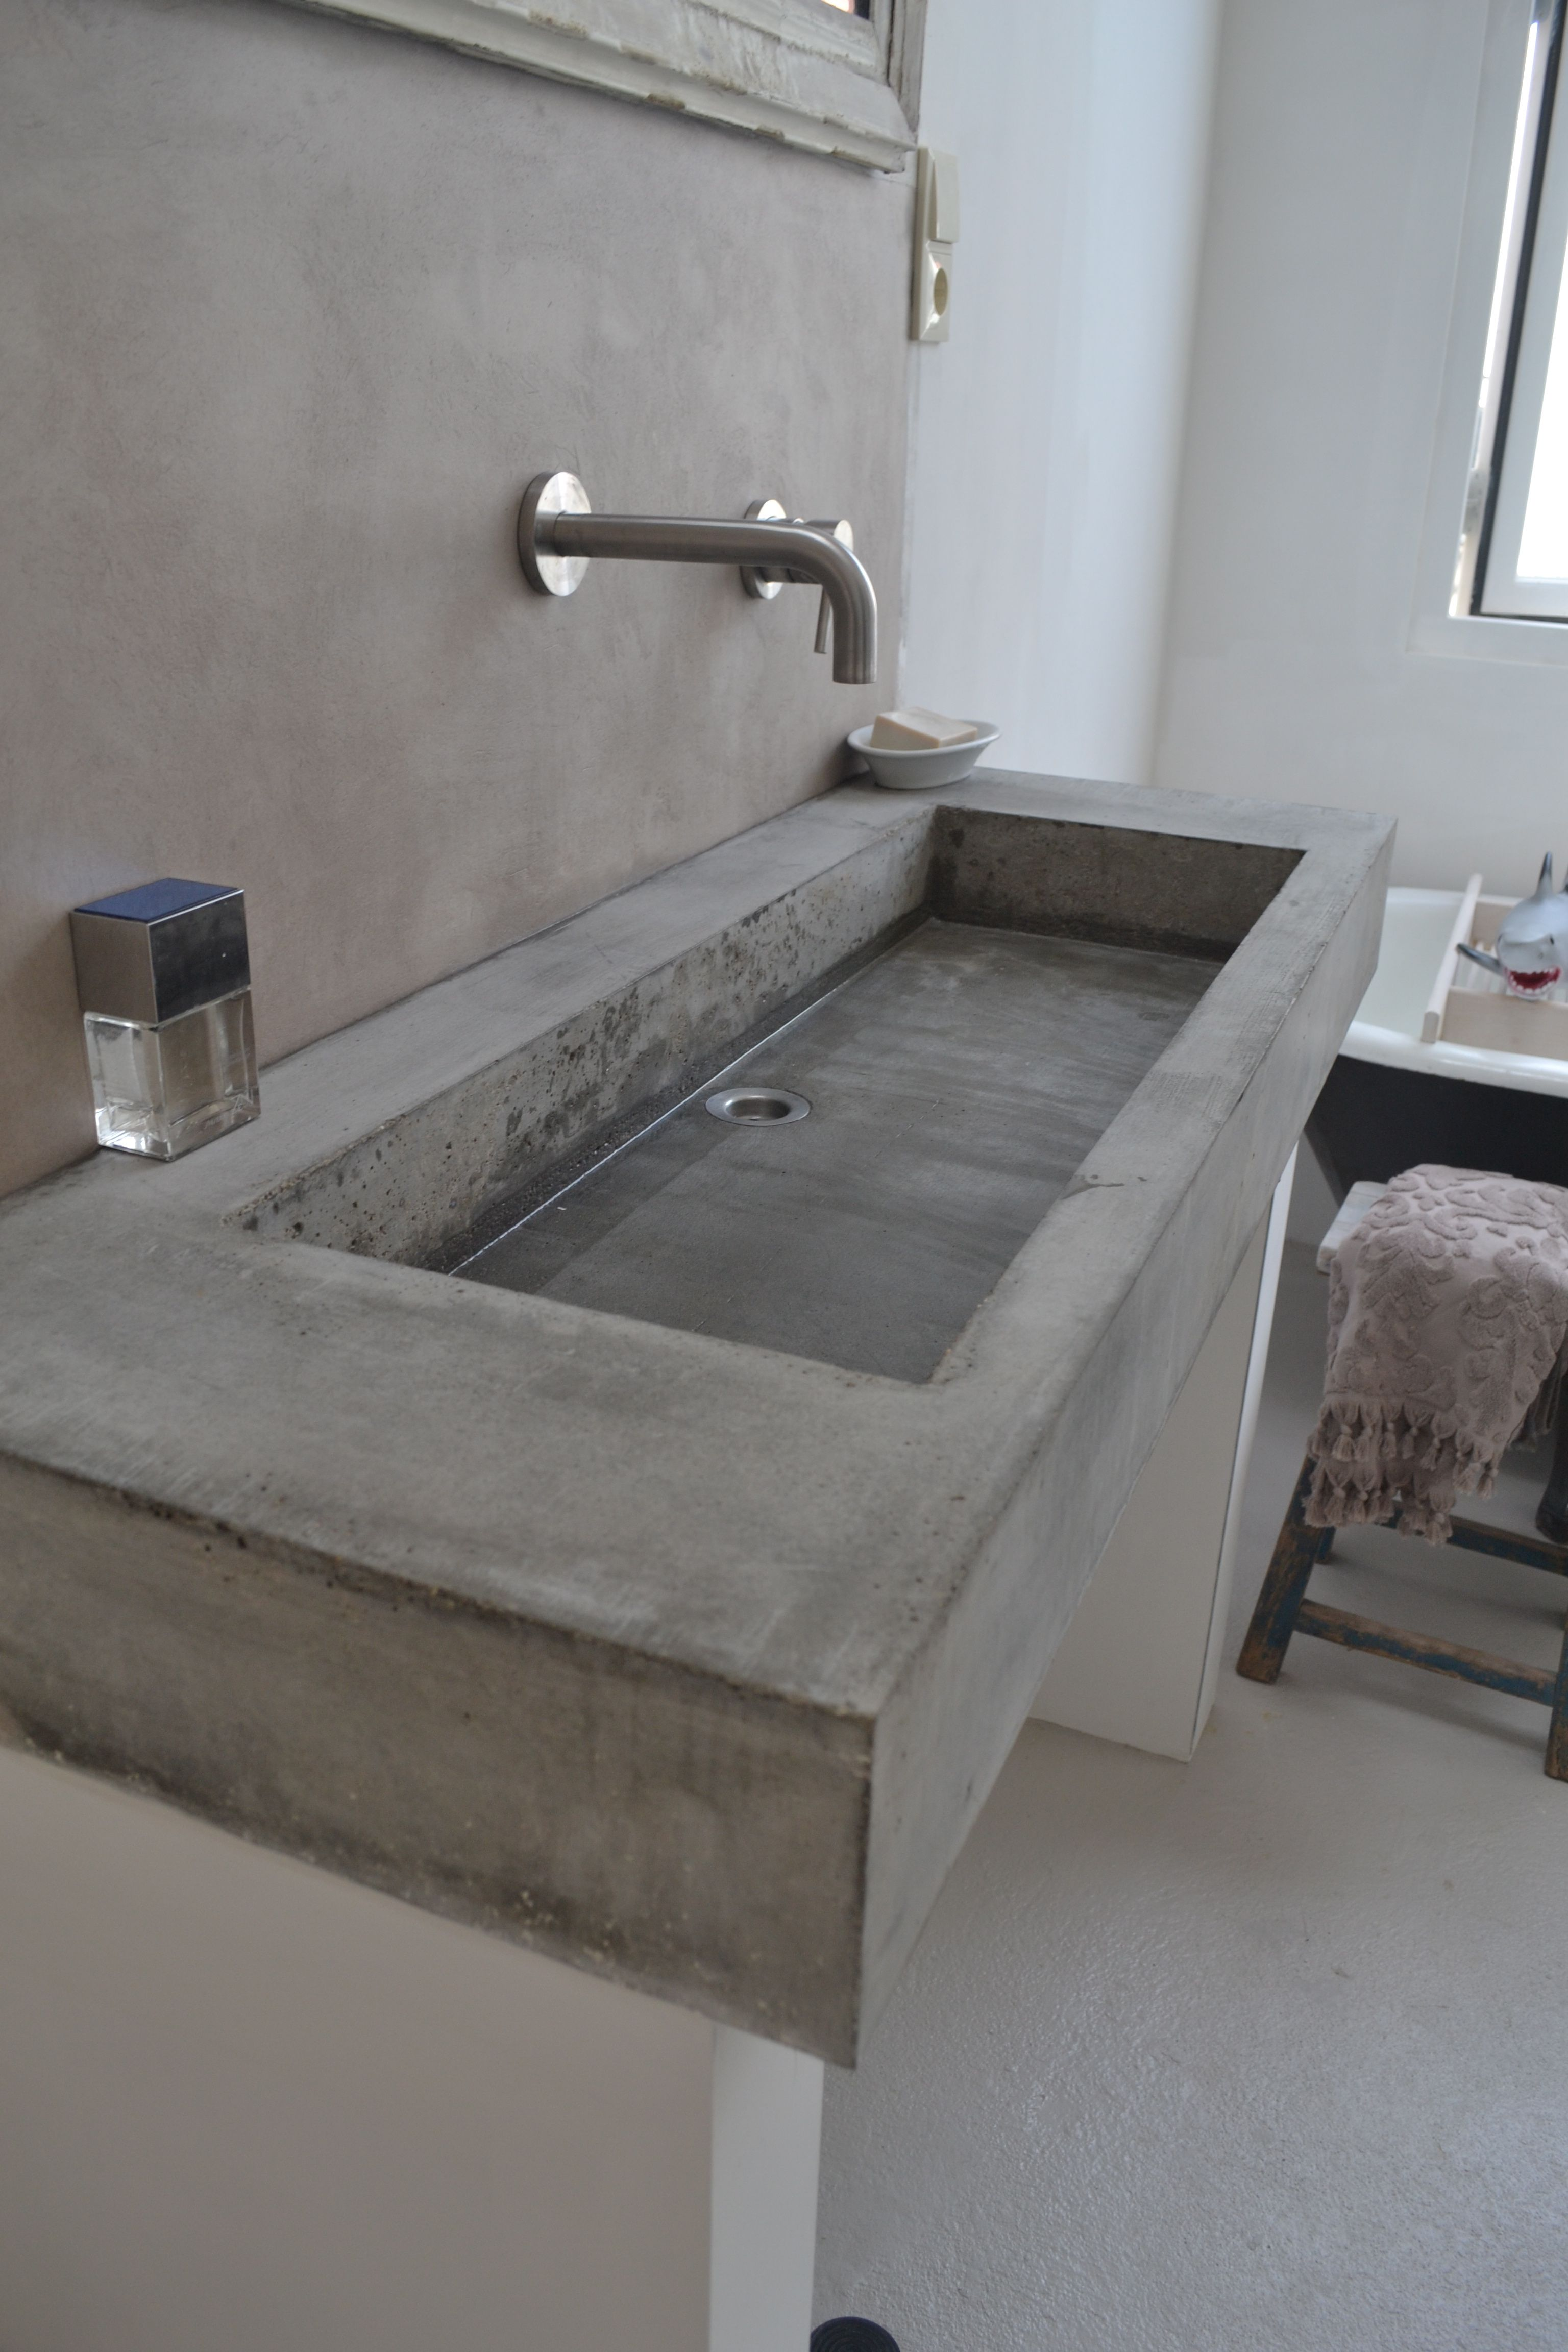 Concrete Bathroom Sinks That Make A Strong Statement Without Any ...